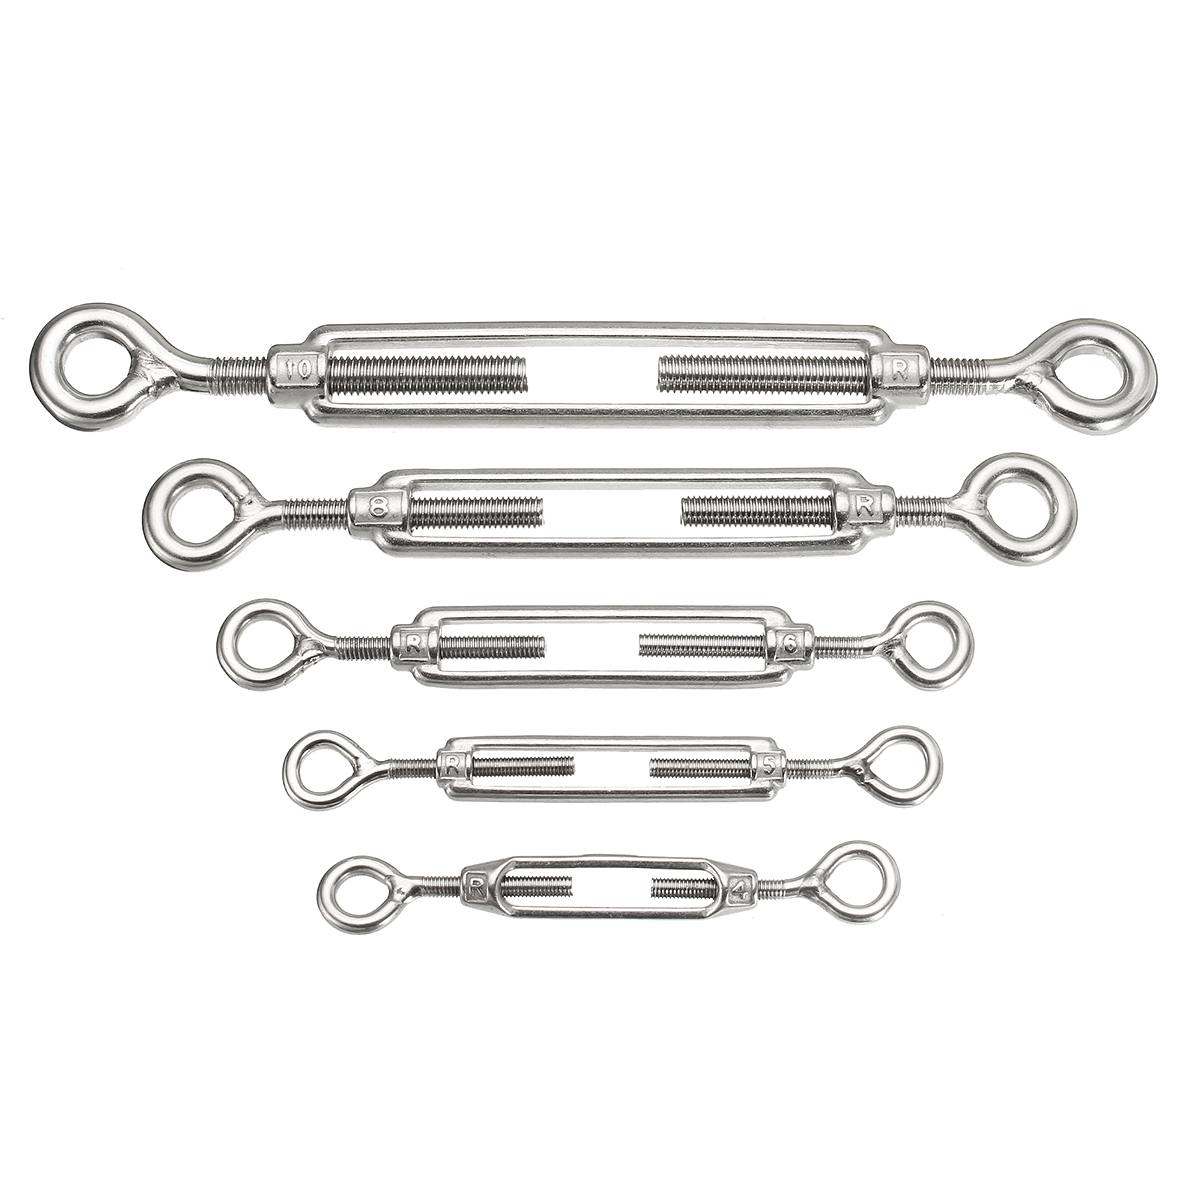 M4/10 304 Stainless Steel Turn Buckle Stainless Steel Eye/Eye Turn Buckle Wire Rope Tensioner Steel <font><b>Turnbuckle</b></font> Accessories image